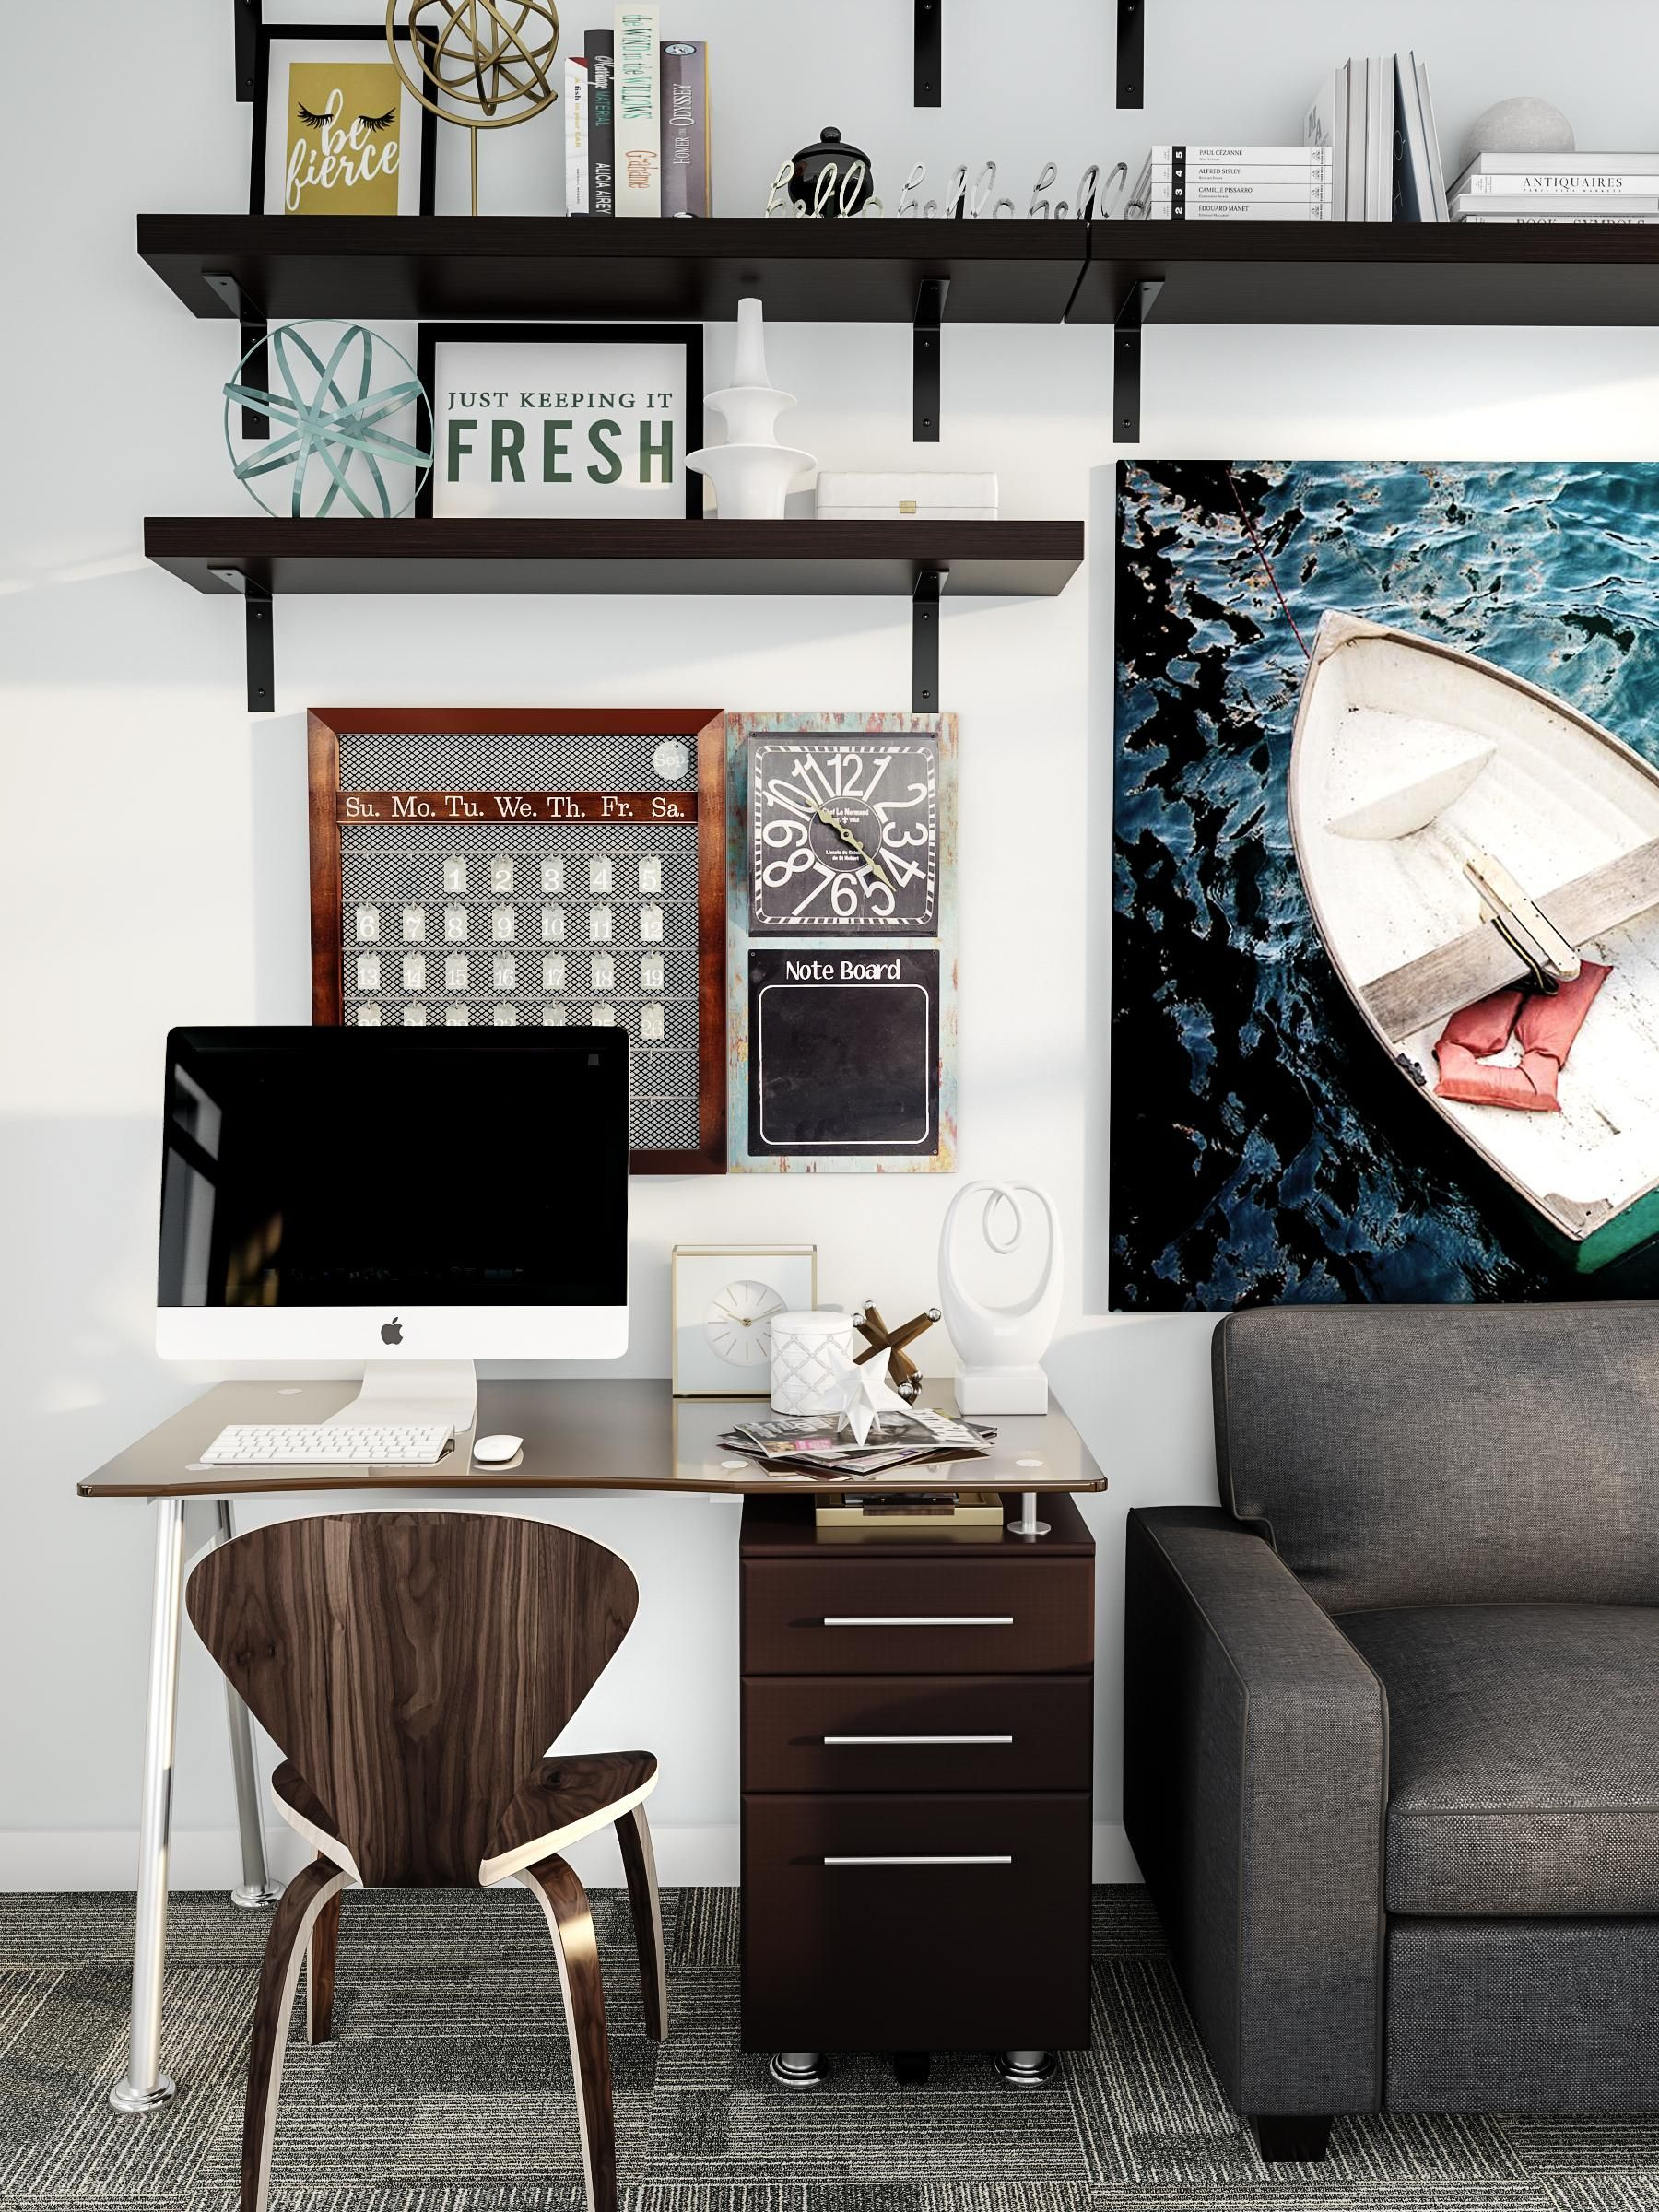 Set aside a space for your desktop. This home office nook